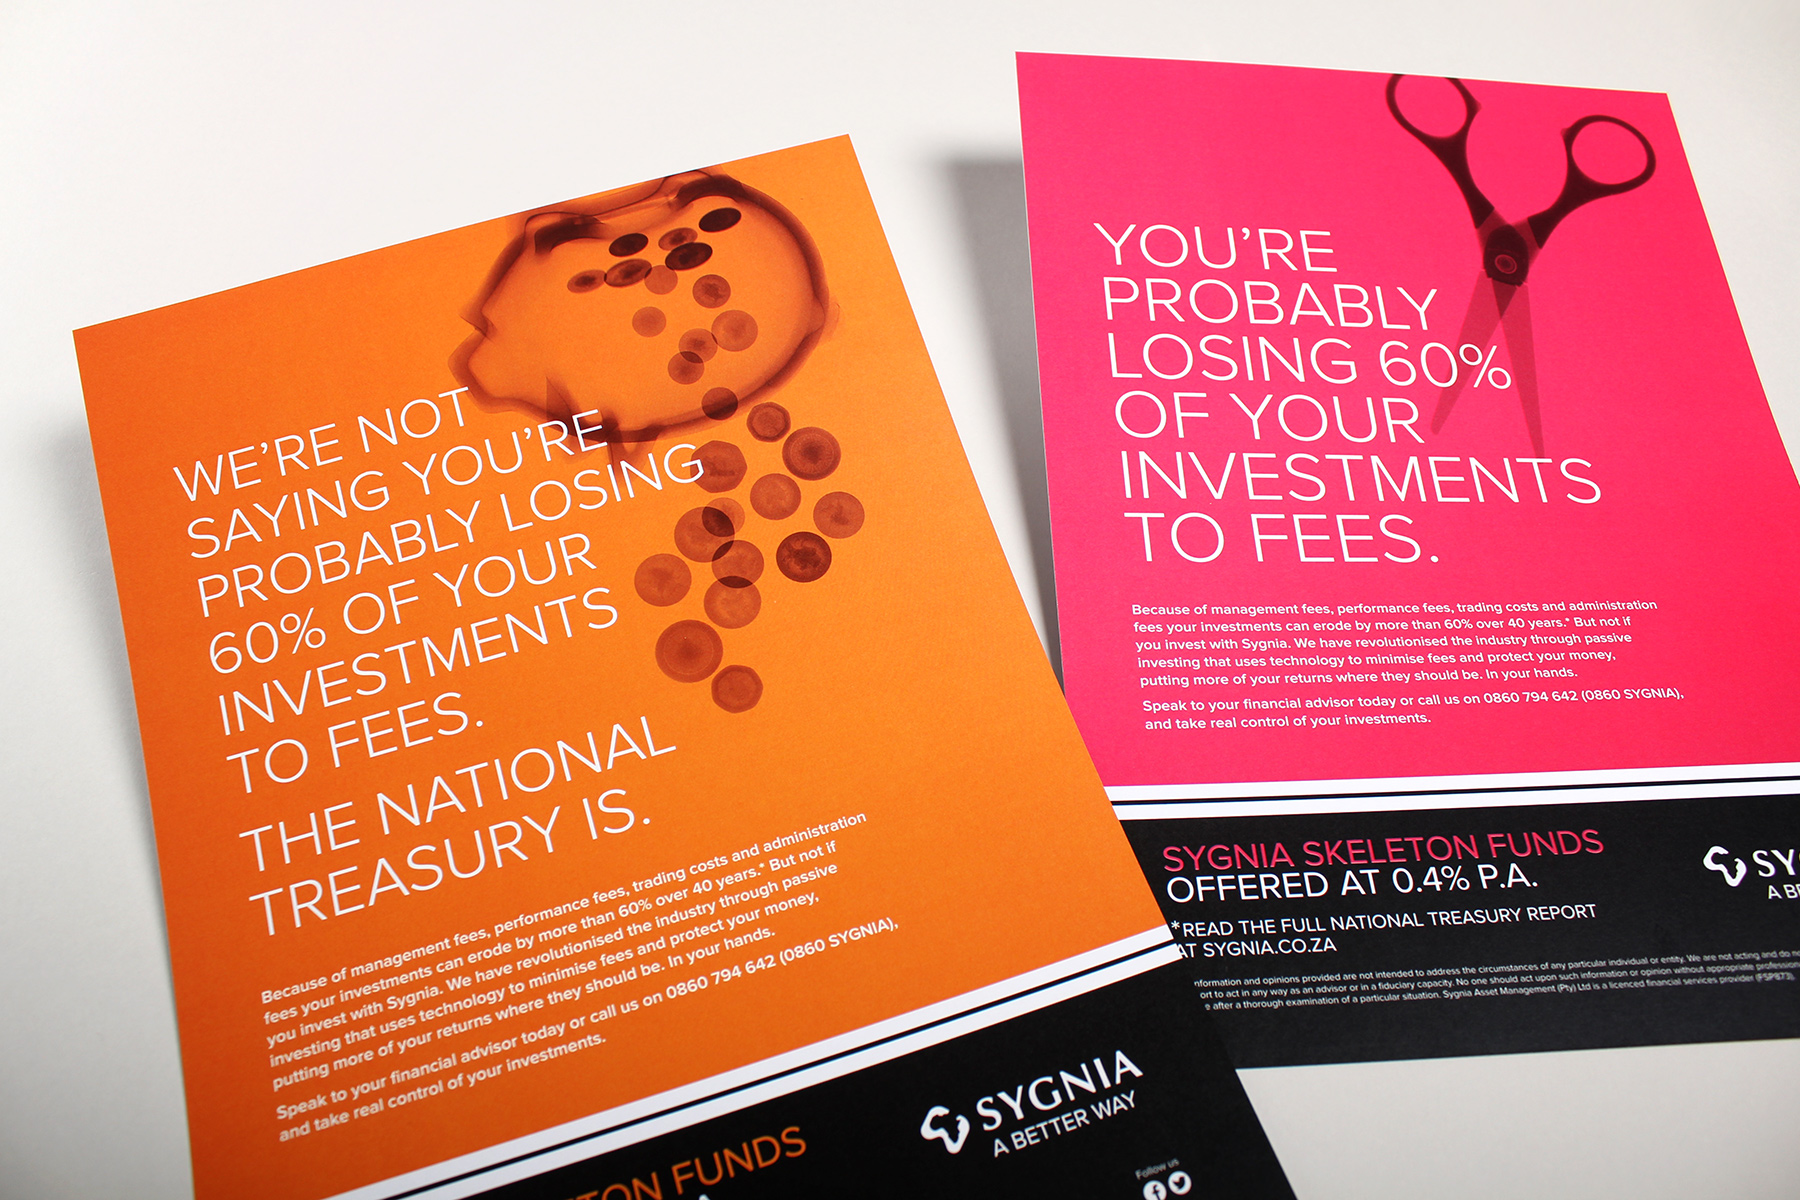 The corporate identity utilises the anchor black and white branding combined with bright acidic campaign colours.